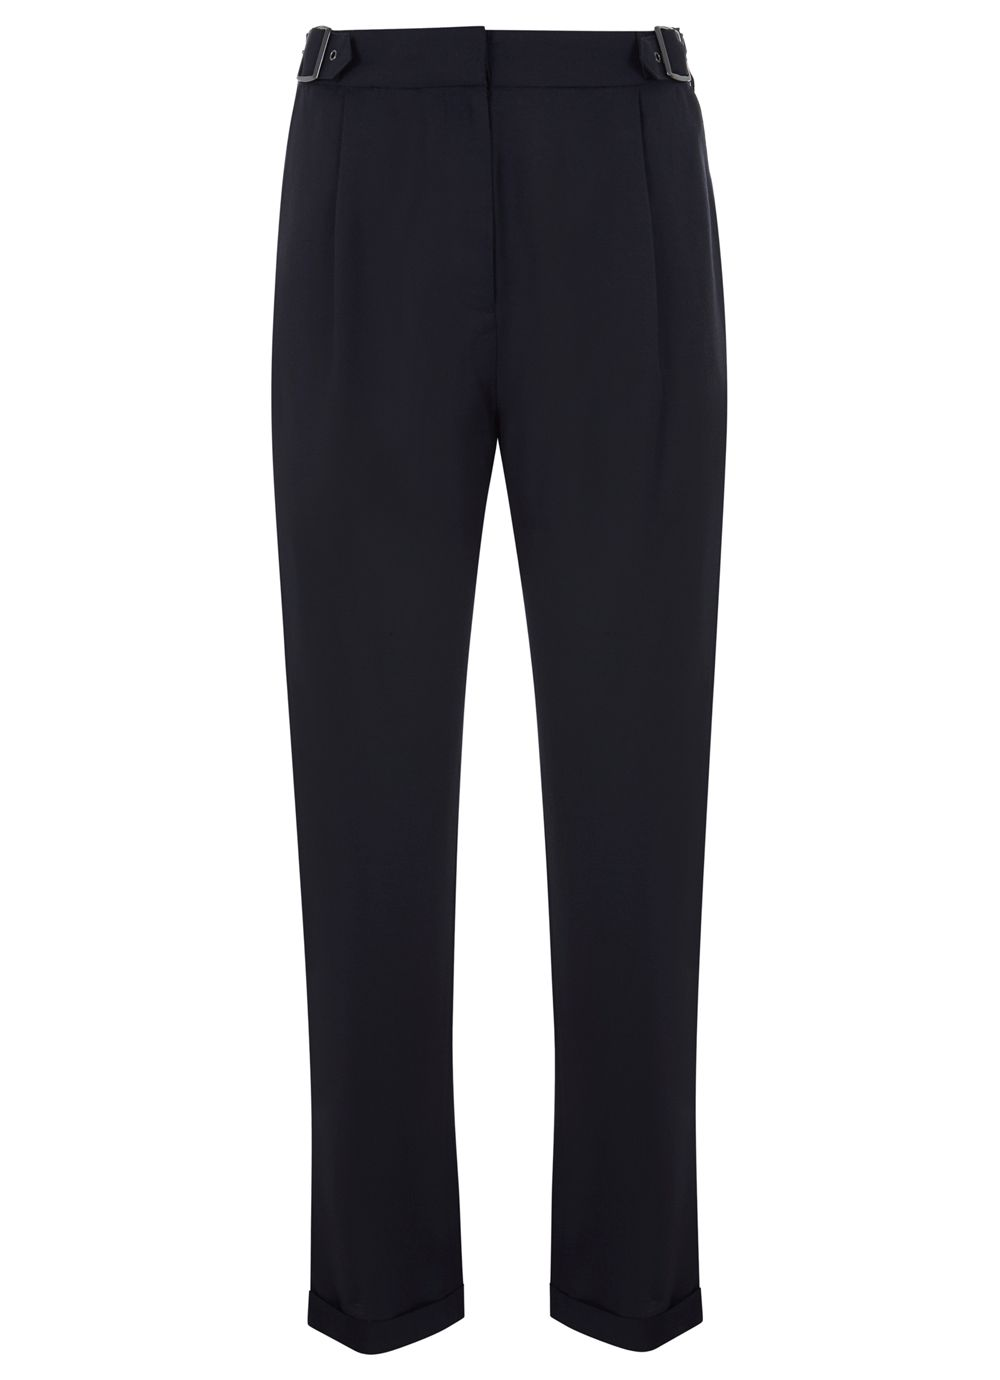 Ink Sports Buckle Trouser